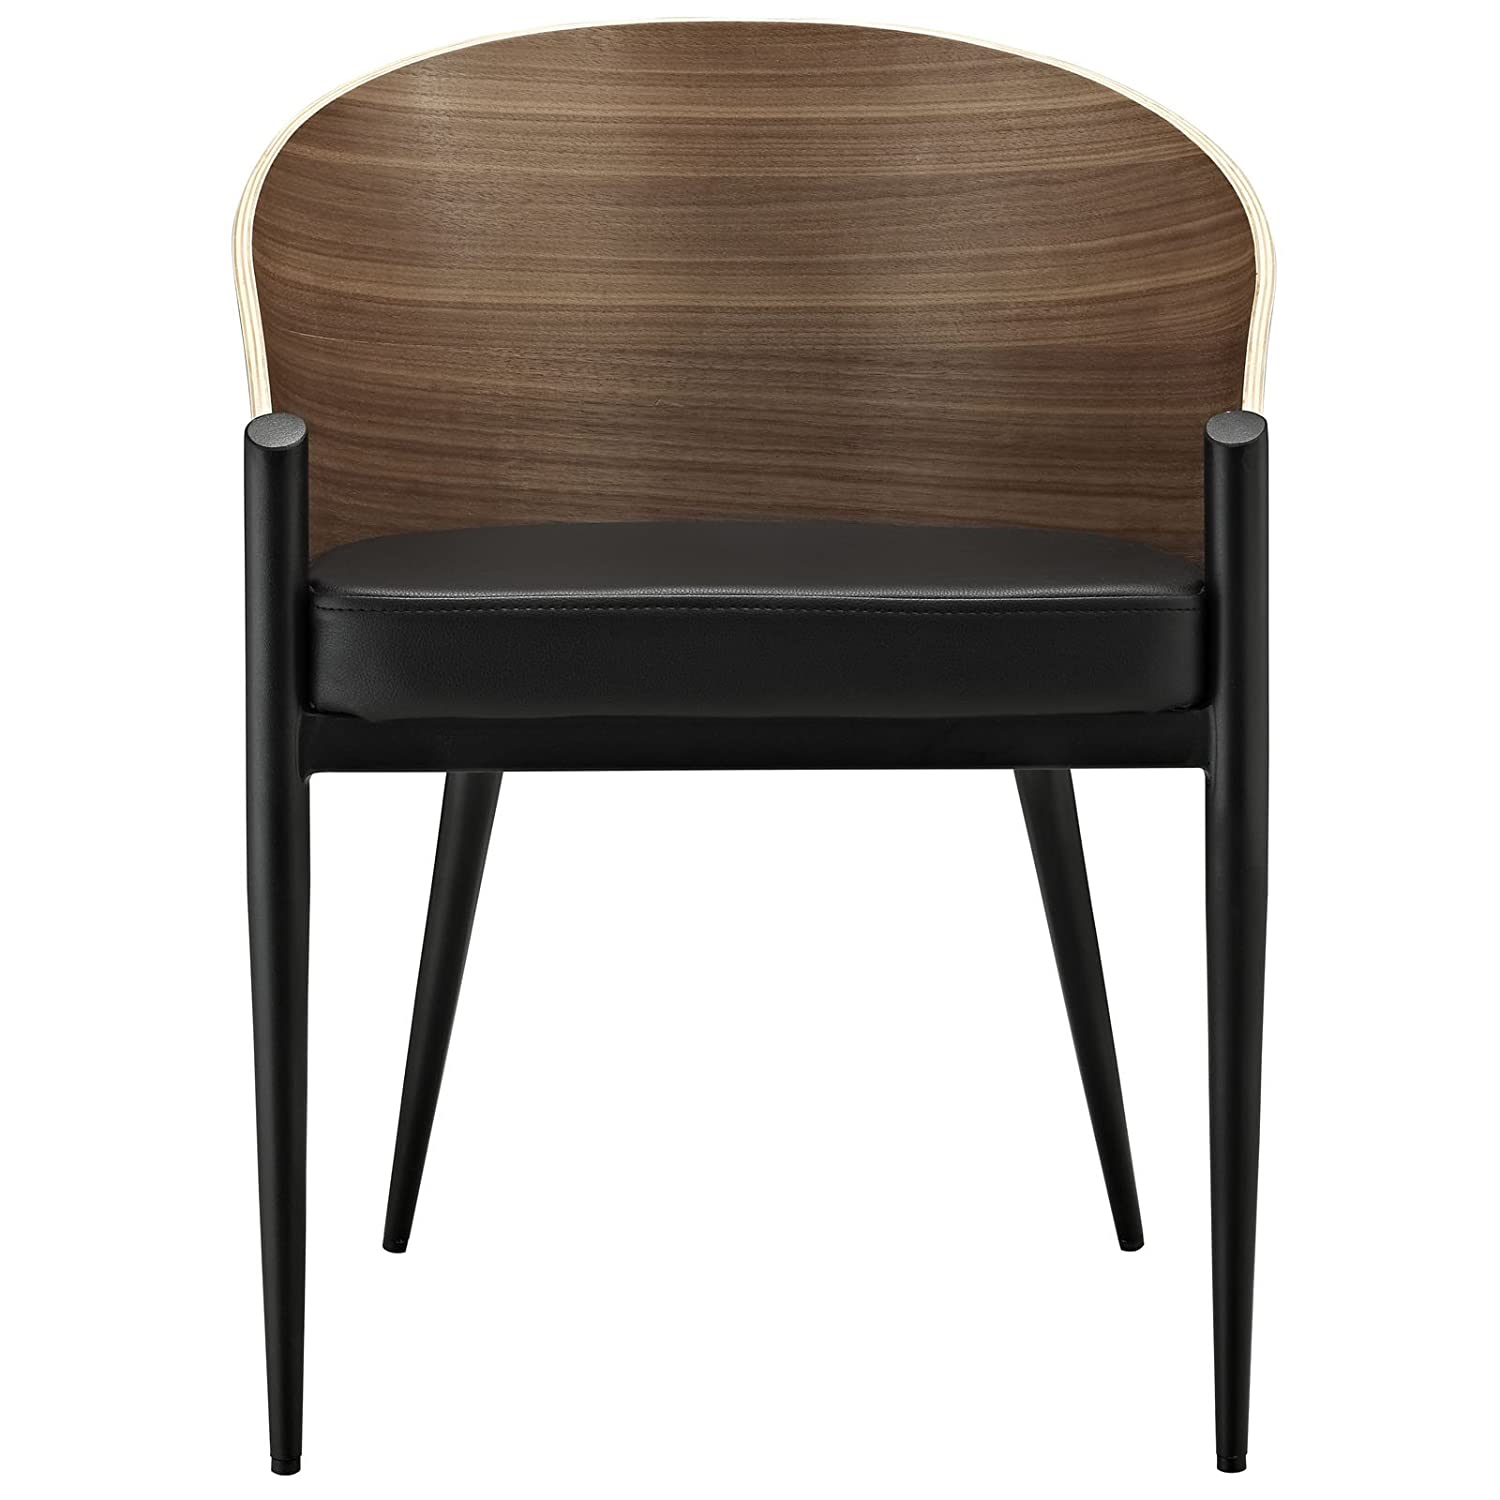 Amazon.com - Modway Cooper Dining Wood Armchair in Walnut - Chairs